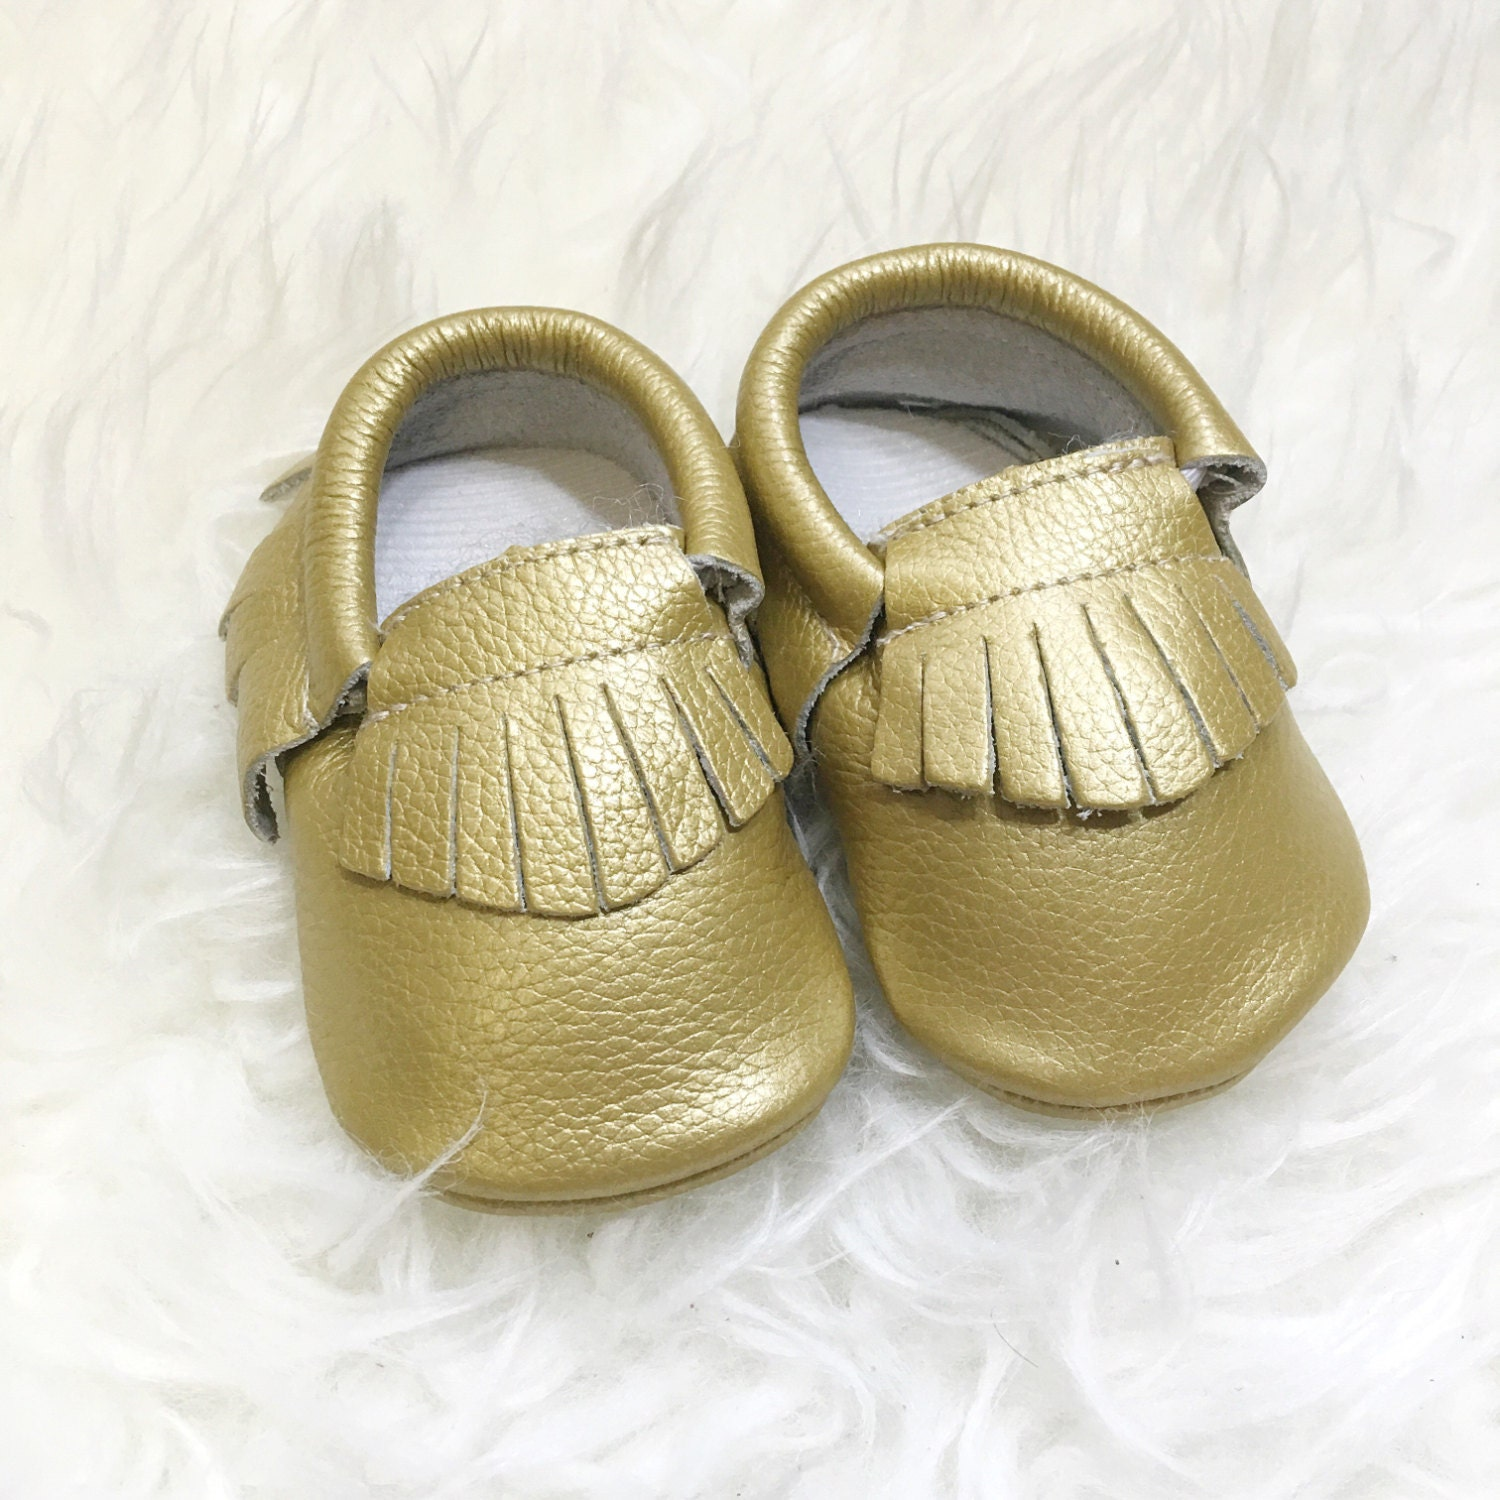 Gold crib for sale - Sale Size 3 Enchanted Gold Genuine Leather Baby Toddler Moccasins Slip On Soft Sole Crib Shoes Boy Girl Prewalker Walking